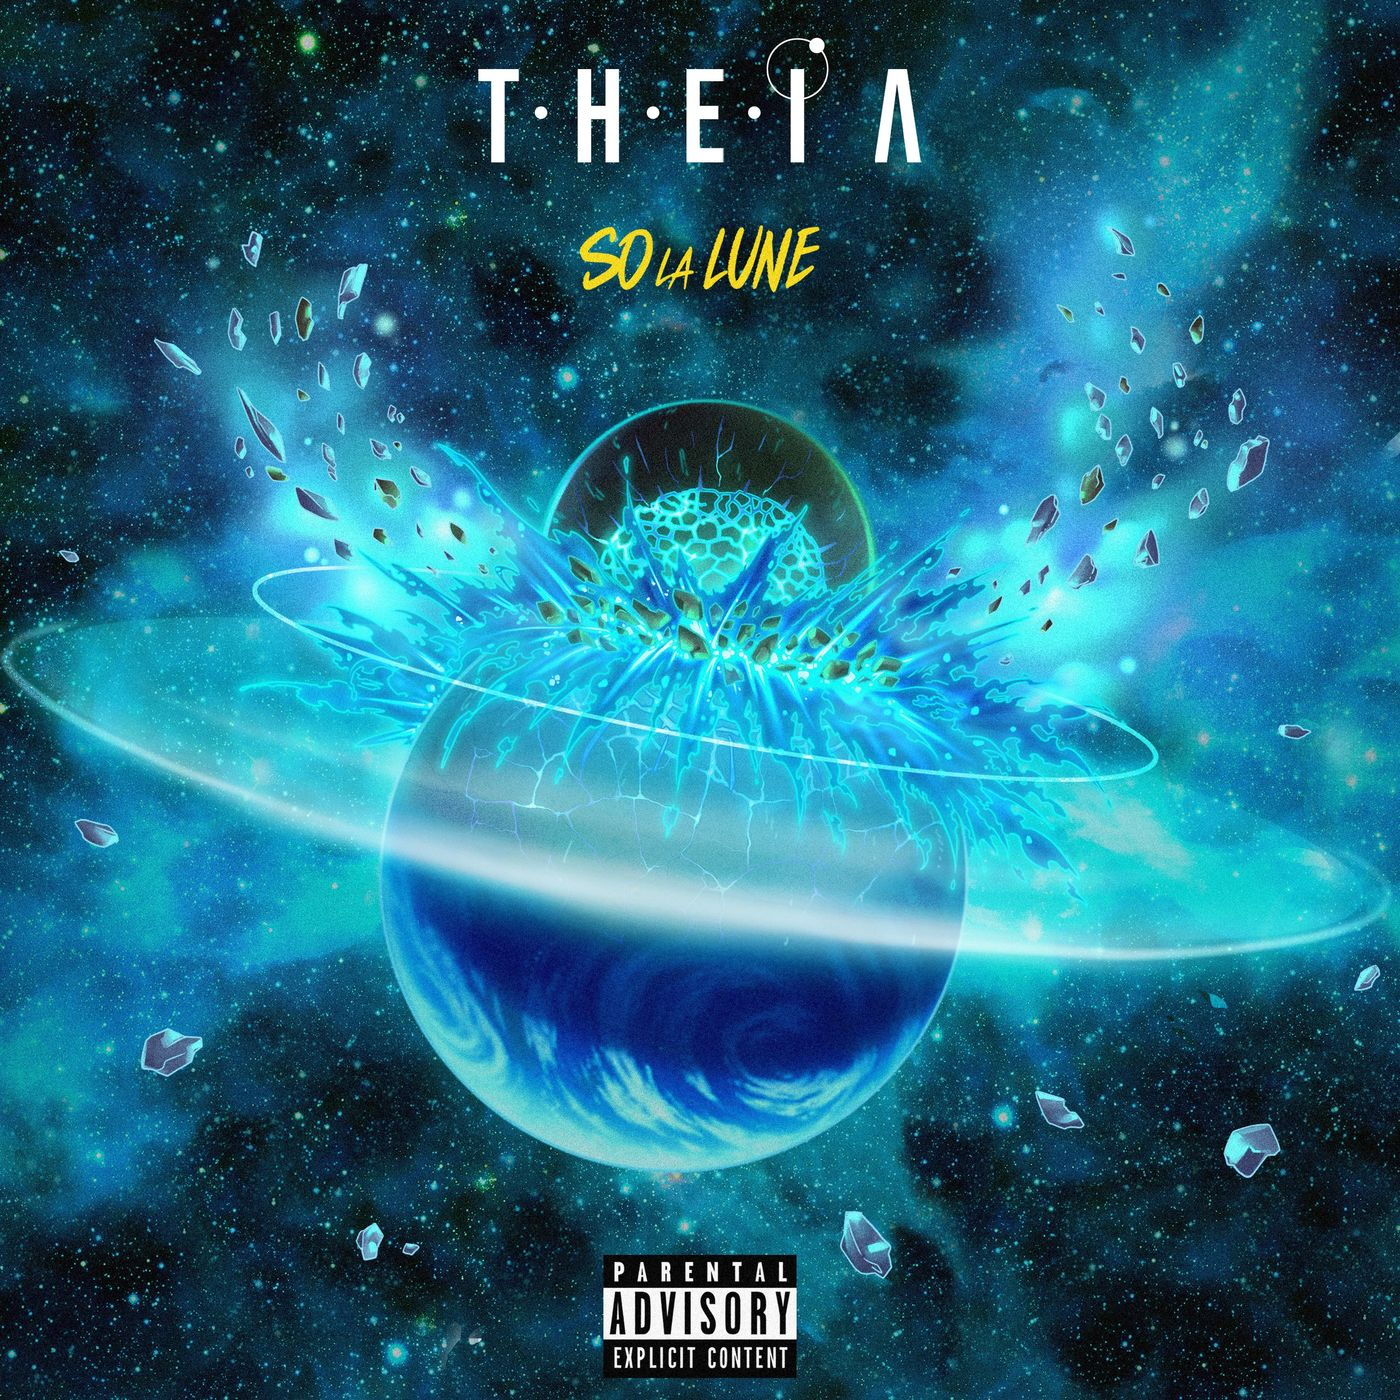 Cover So La Lune - Théia (Explicit) album